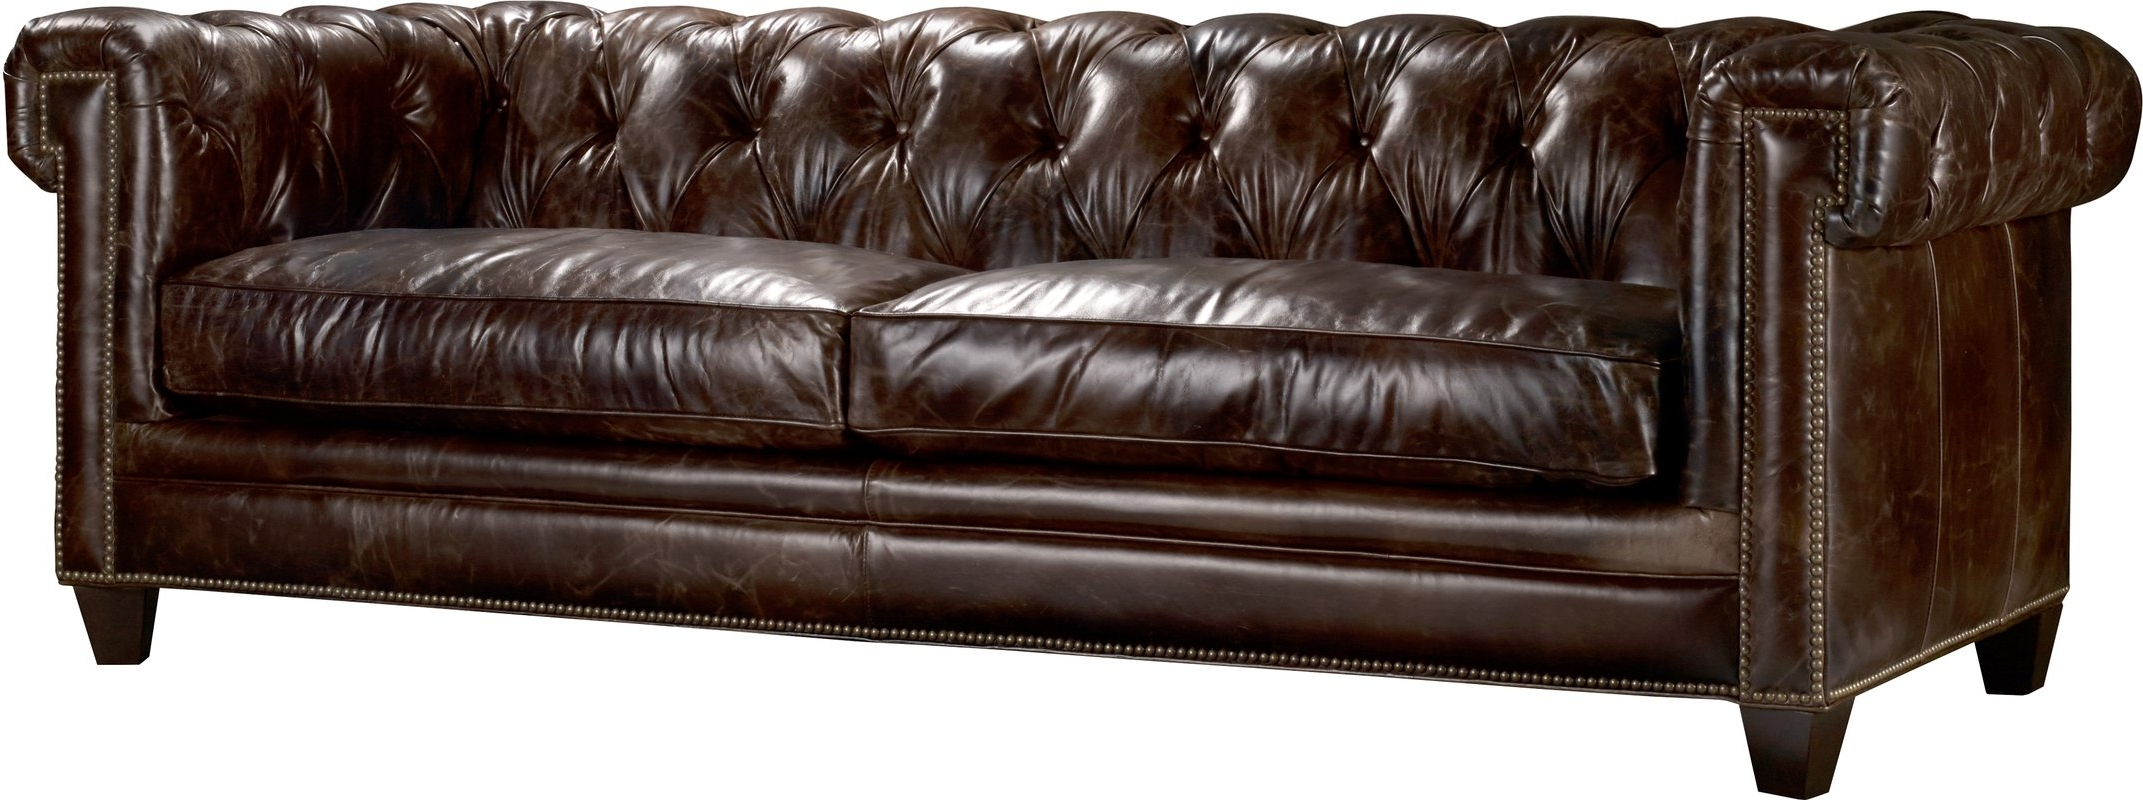 Hooker Furniture Imperial Regal Stationary Leather Chesterfield Inside Recent Leather Chesterfield Sofas (View 6 of 15)